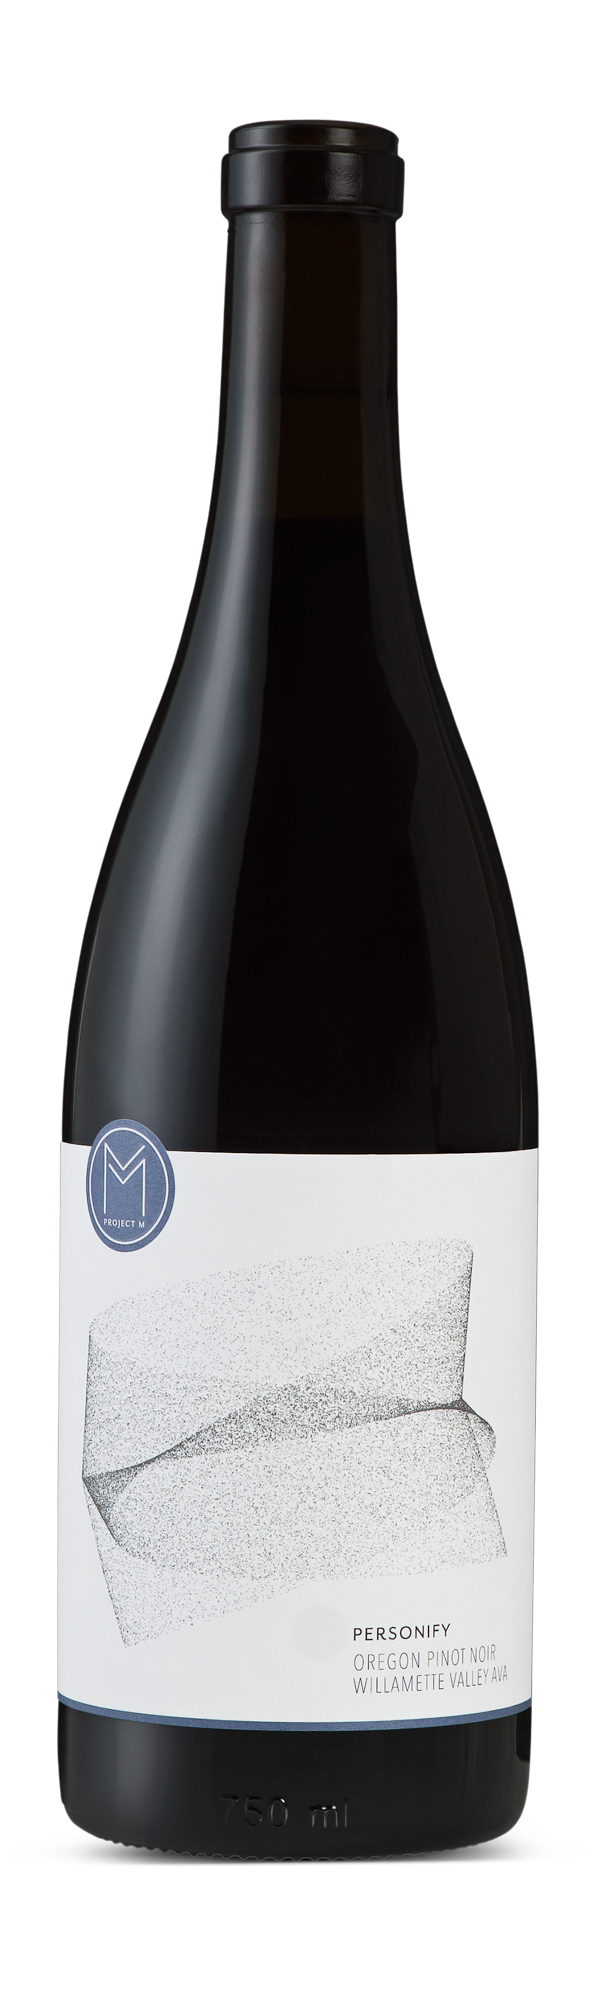 PERSONIFY 2017 Pinot Noir $38